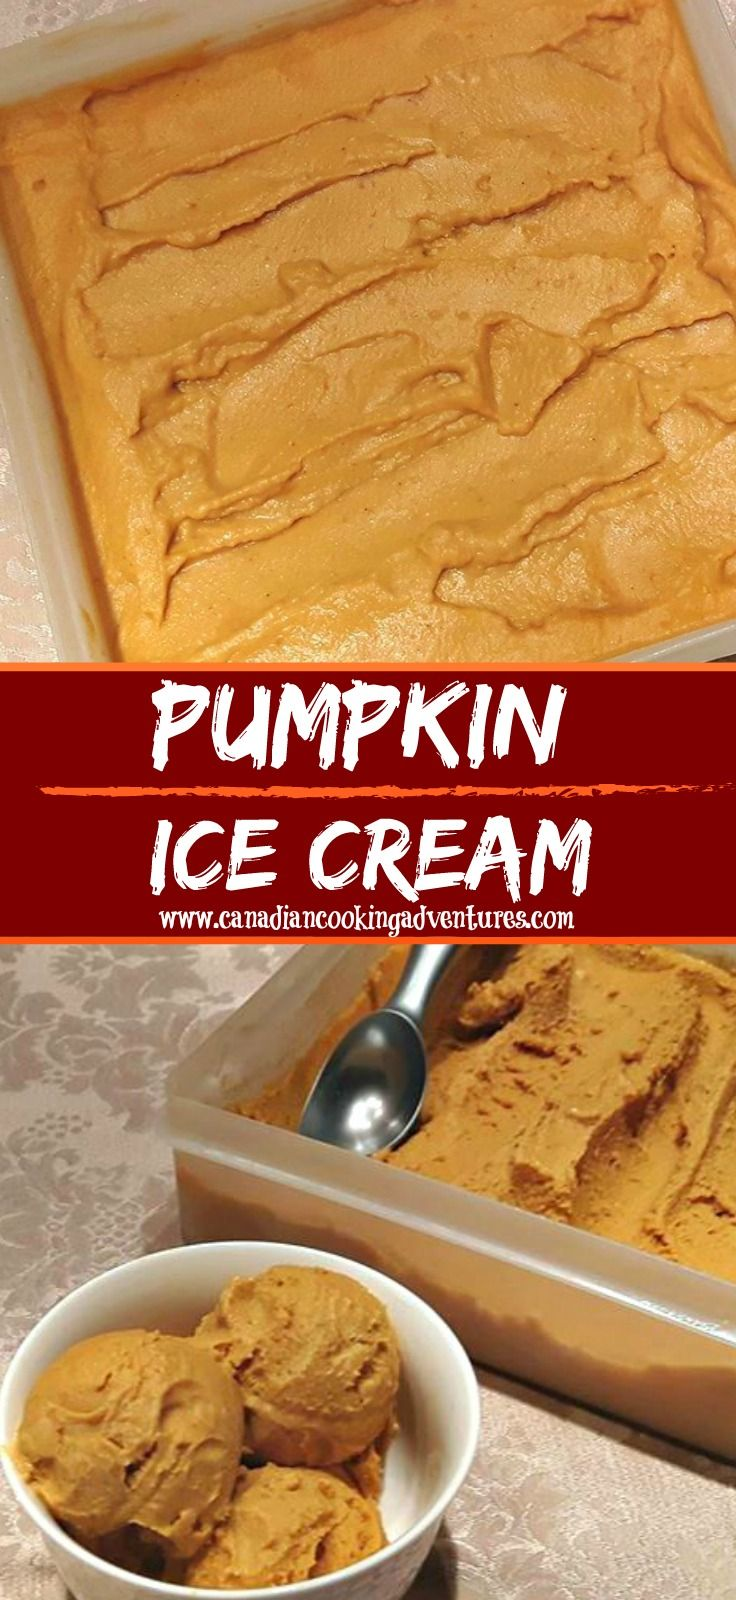 Do you like Pumpkin Pie? Well I do, so much so that I can eat a whole pie to myself. And when you add vanilla ice cream to it then it's even more AMAZING, don't you agree? I grew up eating Pumpkin pie, it was always served as the main dessert around Thanksgiving, Christmas, or Halloween...#icecream #IceCream #thanksgiving #christmas #recipe #recipes #recipesforcakes